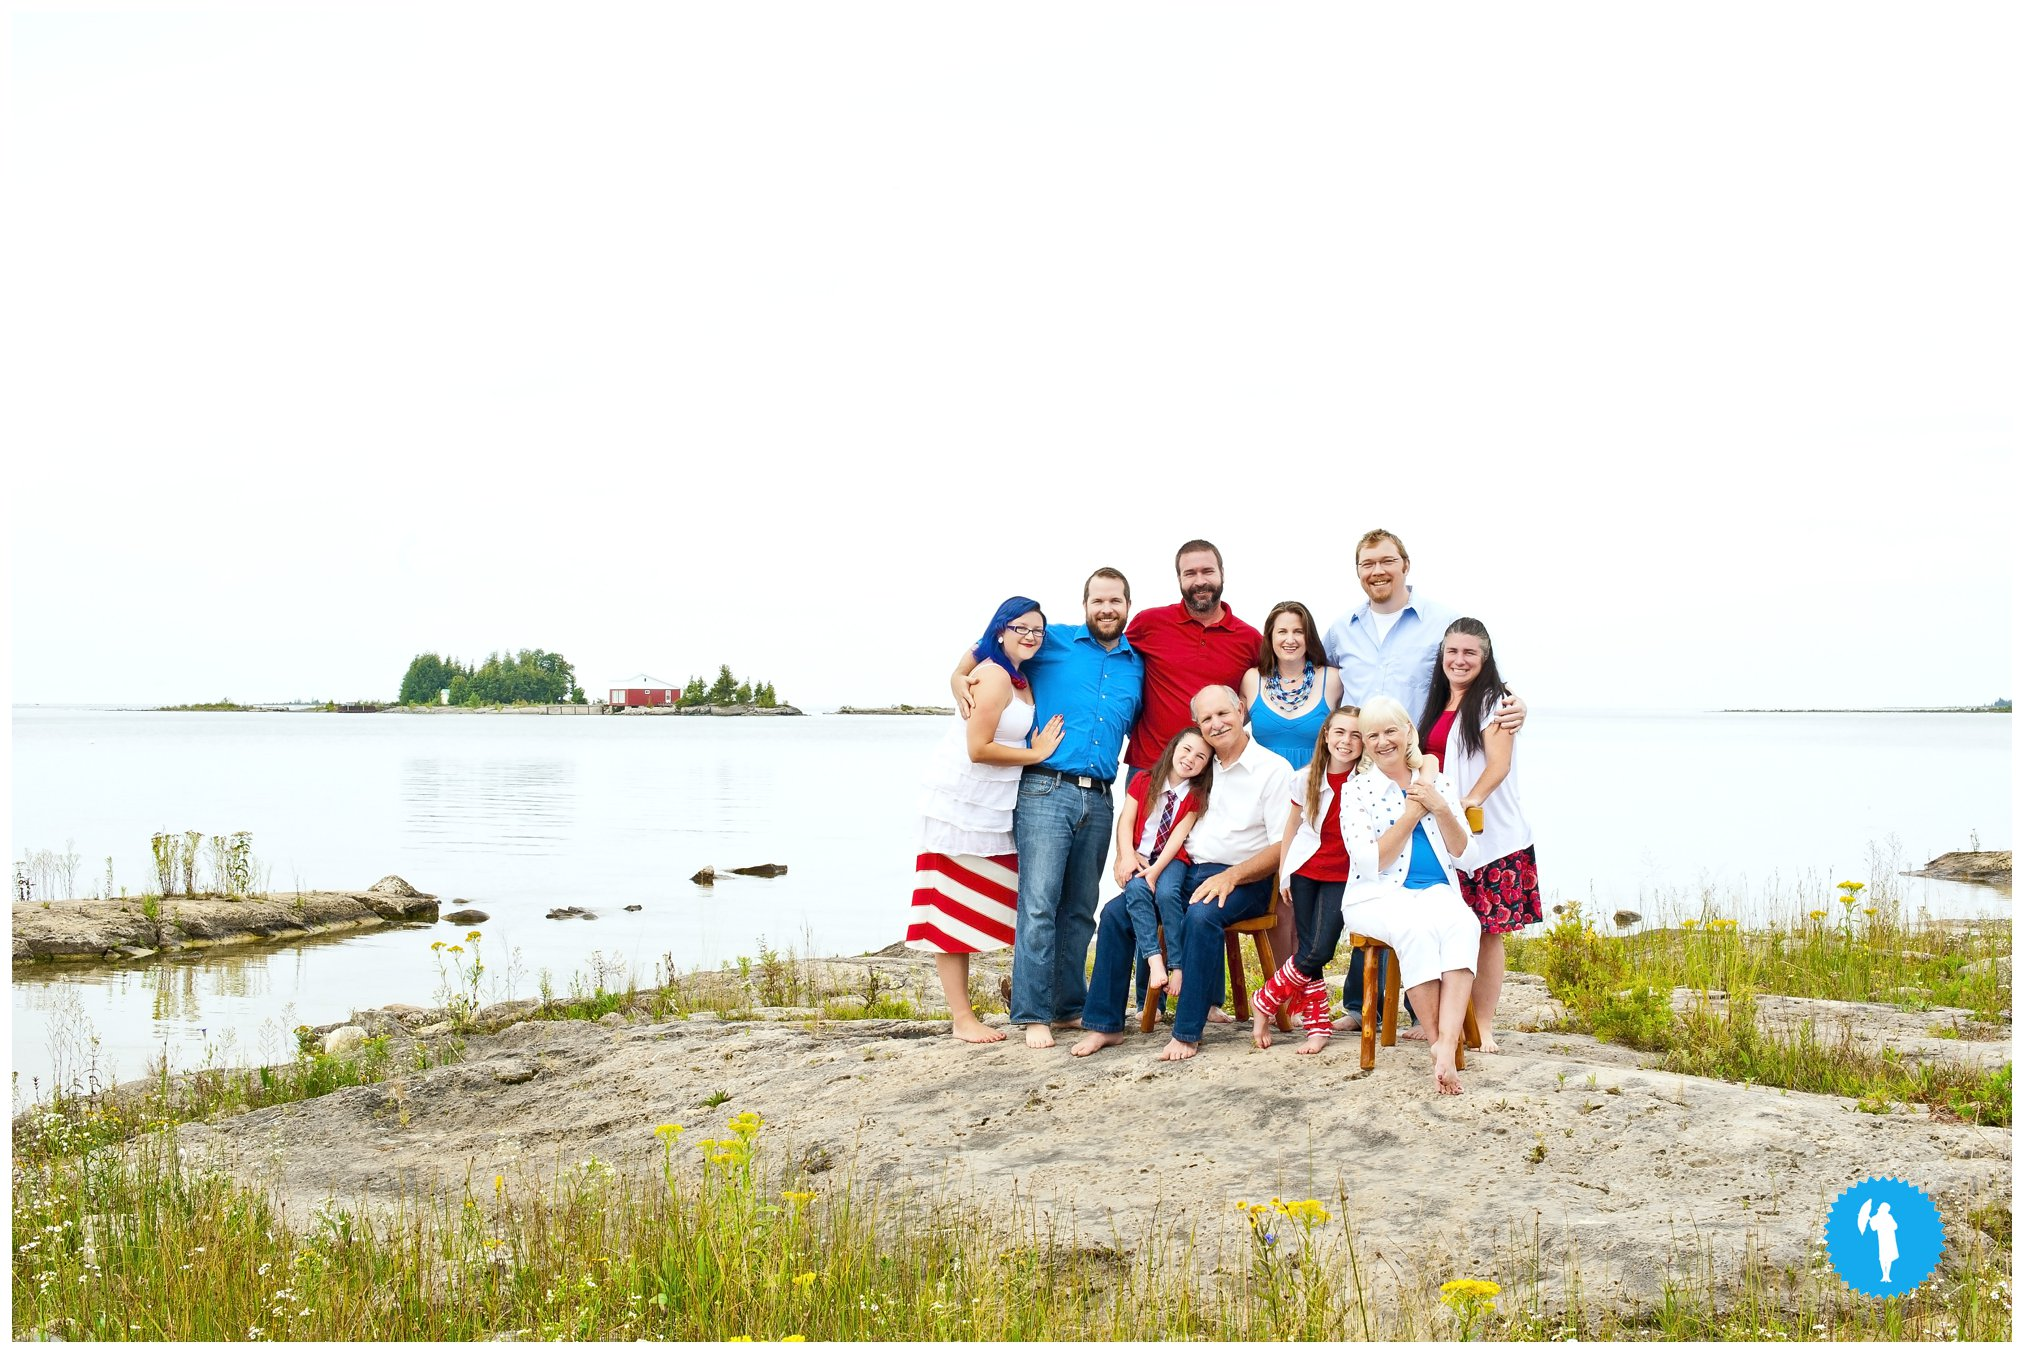 Family portraits by Emily Beatty Imagery of Kitchener Ontario. Taken in Oliphant, 2013.